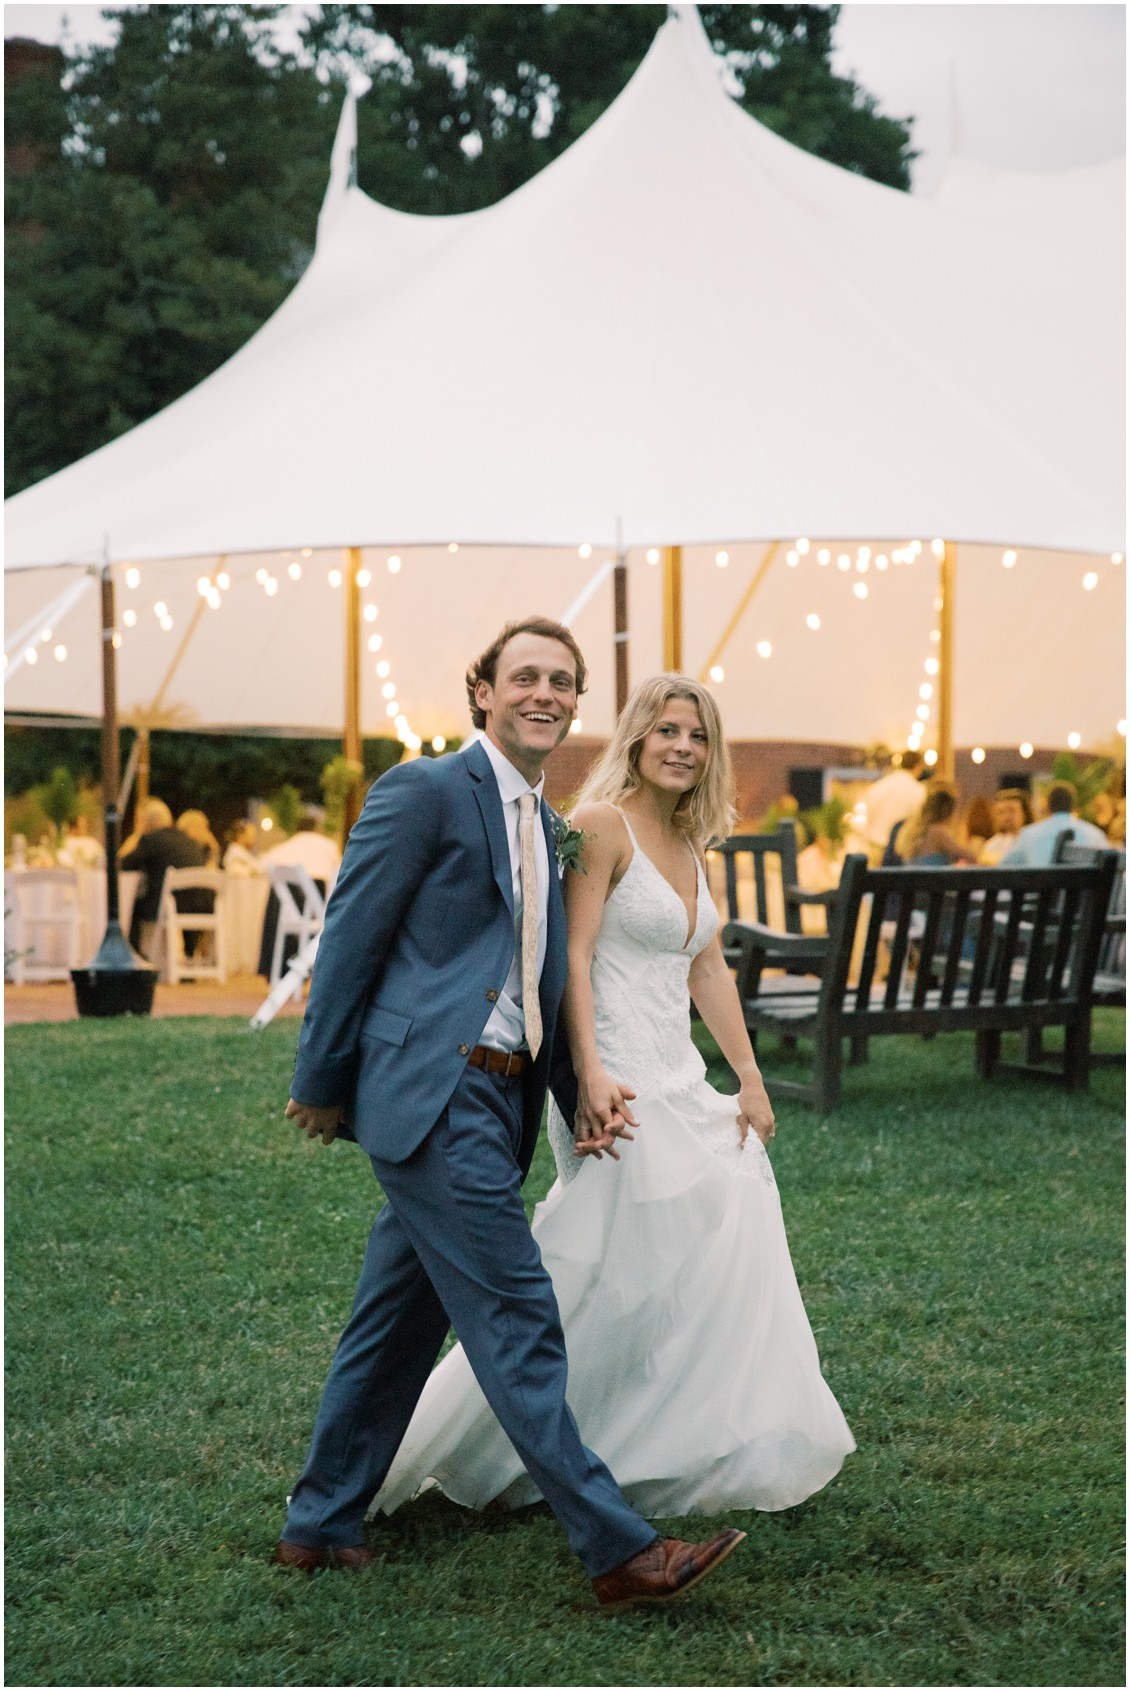 Bride and groom portrait at  picturesque wedding with pops of pink | My Eastern Shore Wedding